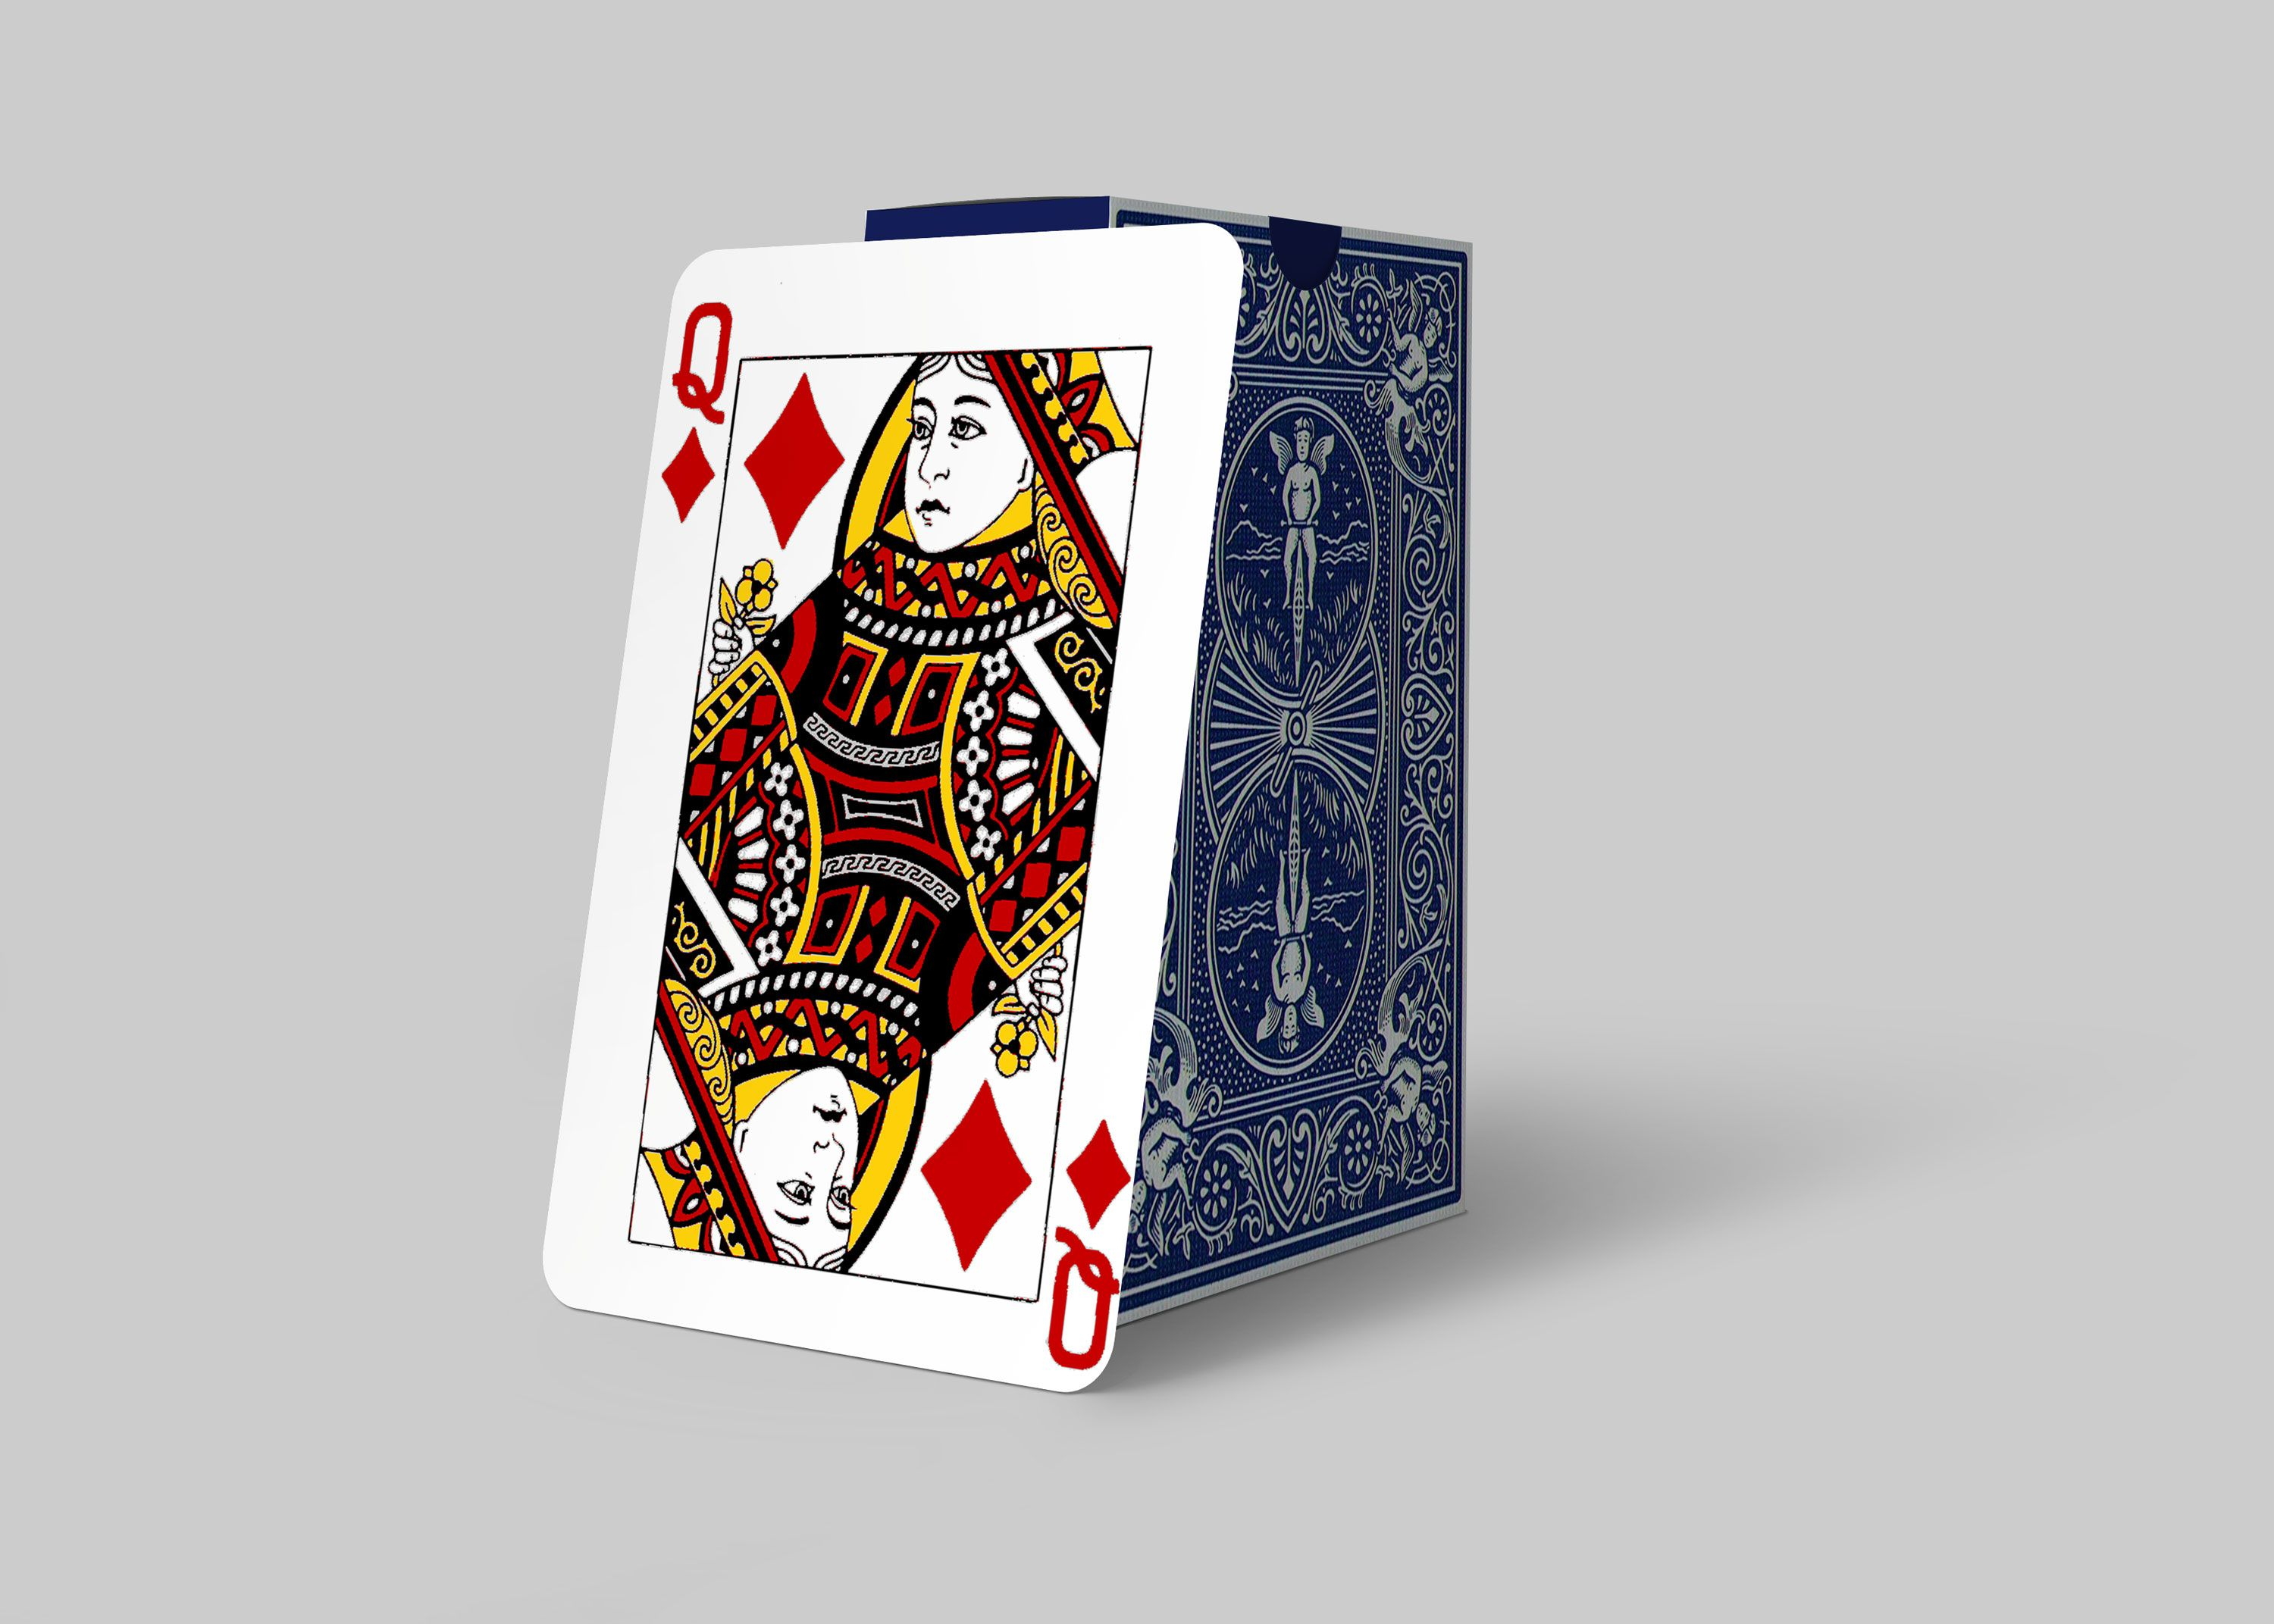 Free Playing Card Queen Card Design Mockup Mockup Free Psd Mockup Design Free Mockup